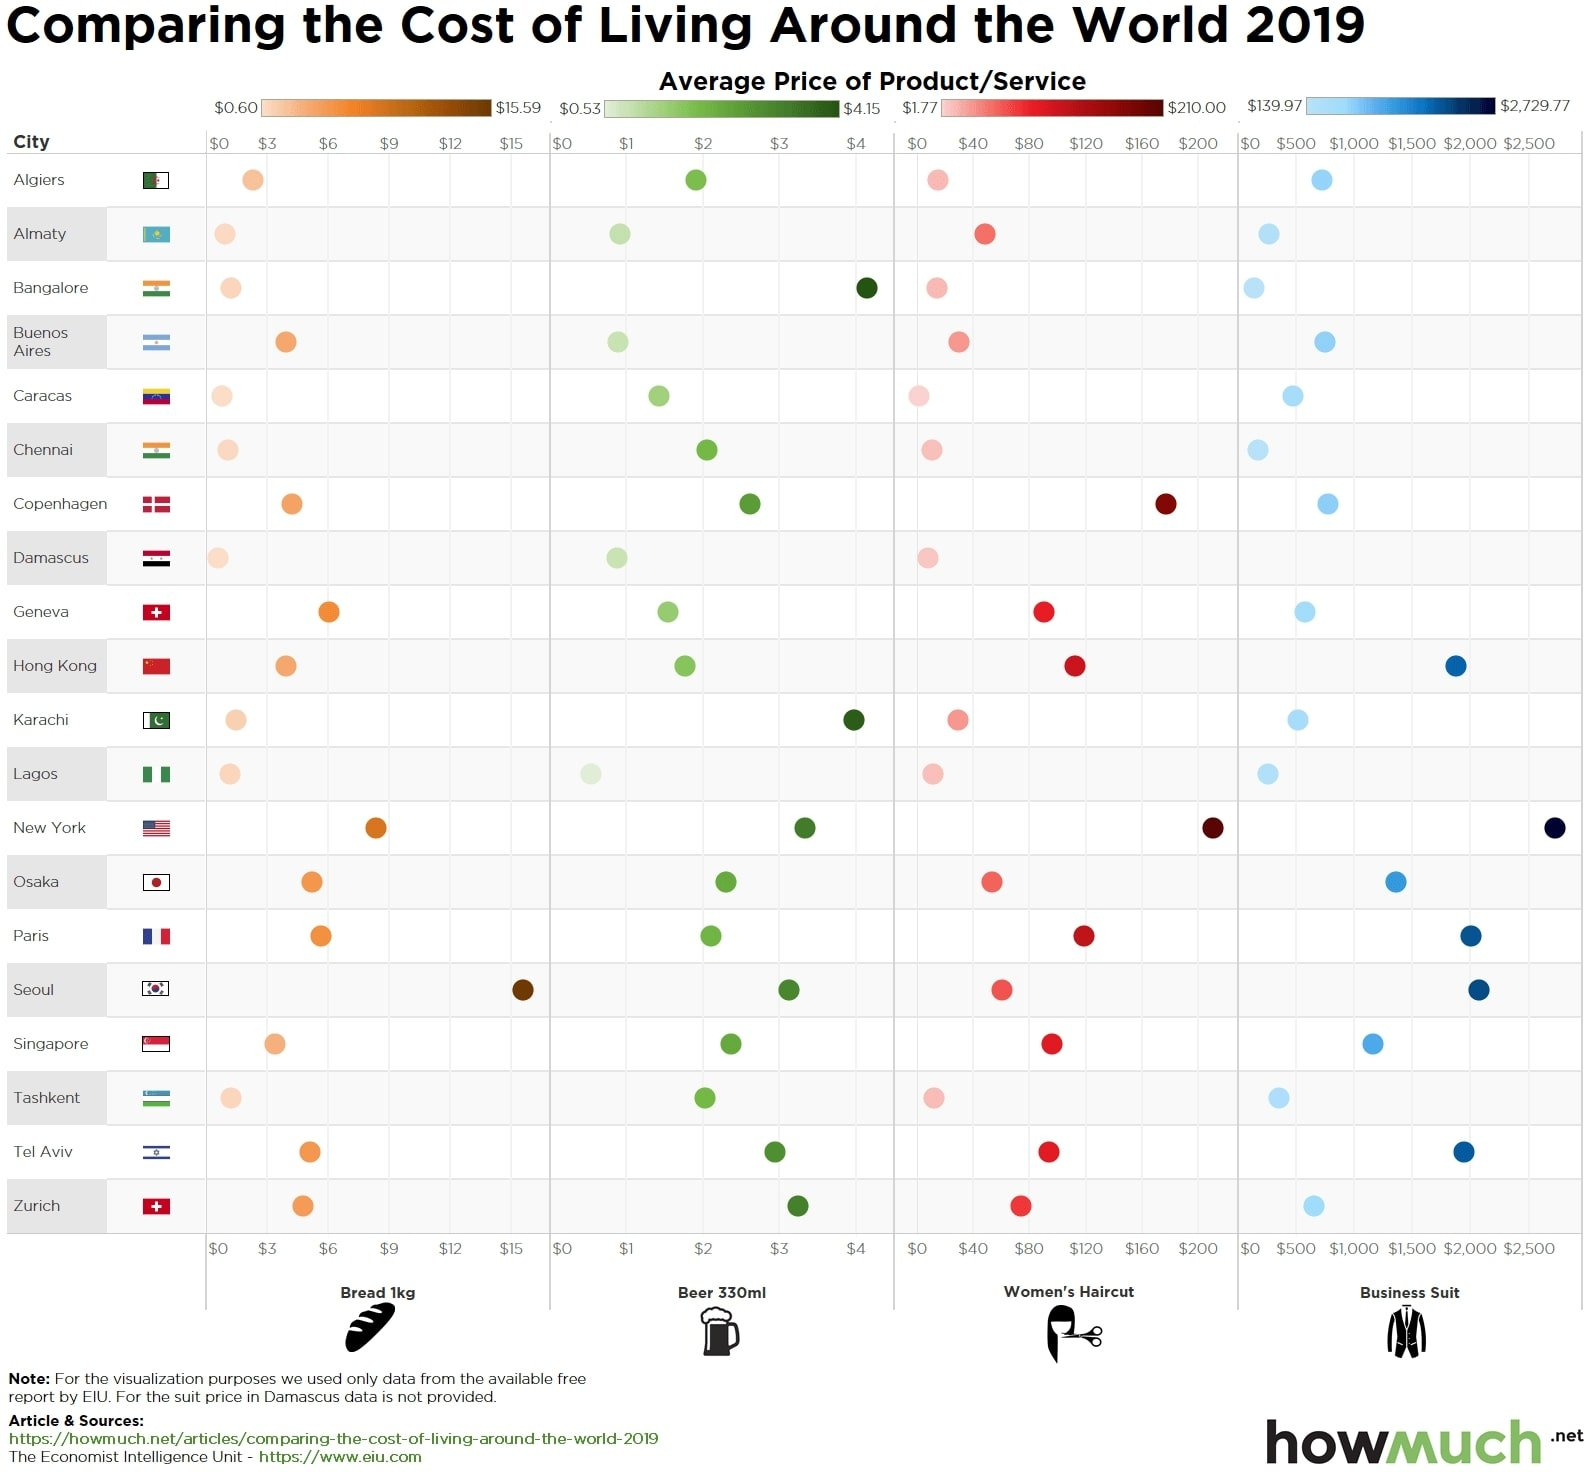 The Cost Of Living Around The World, Visualized Through The Price Of A Haircut, A Beer And A Suit